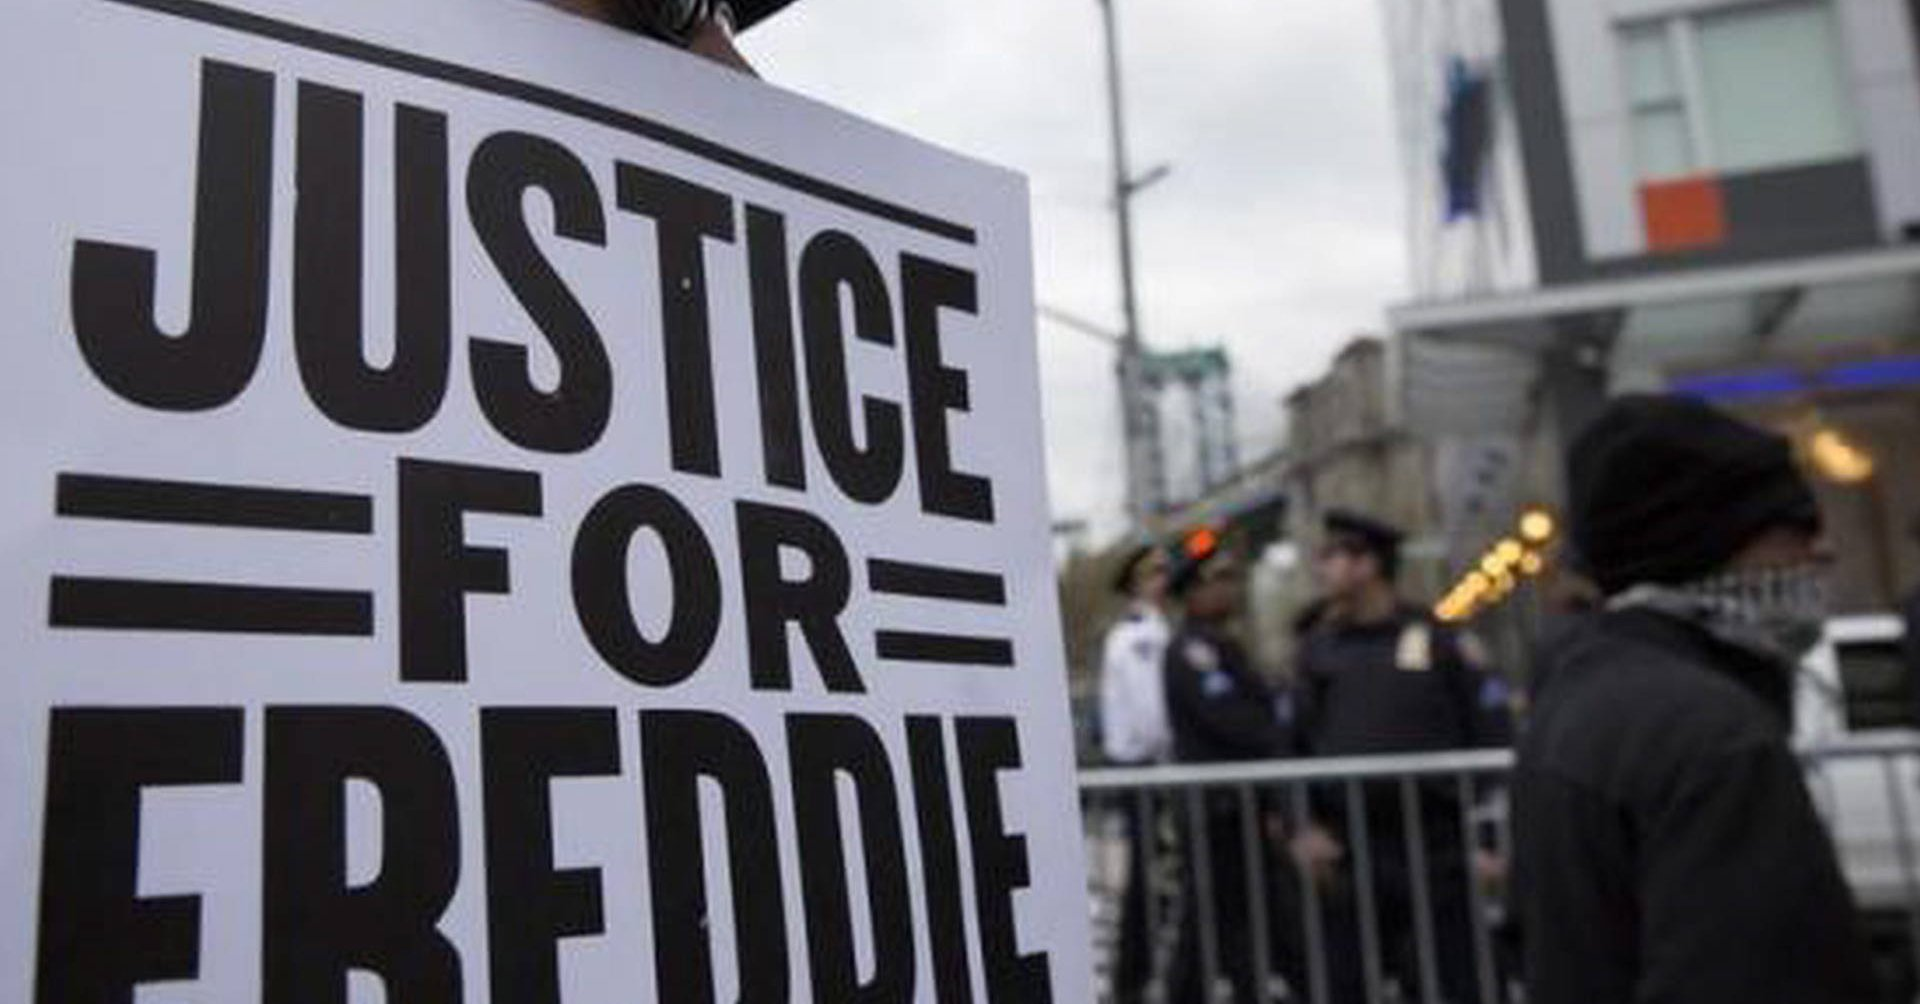 Justice for Freddie 2